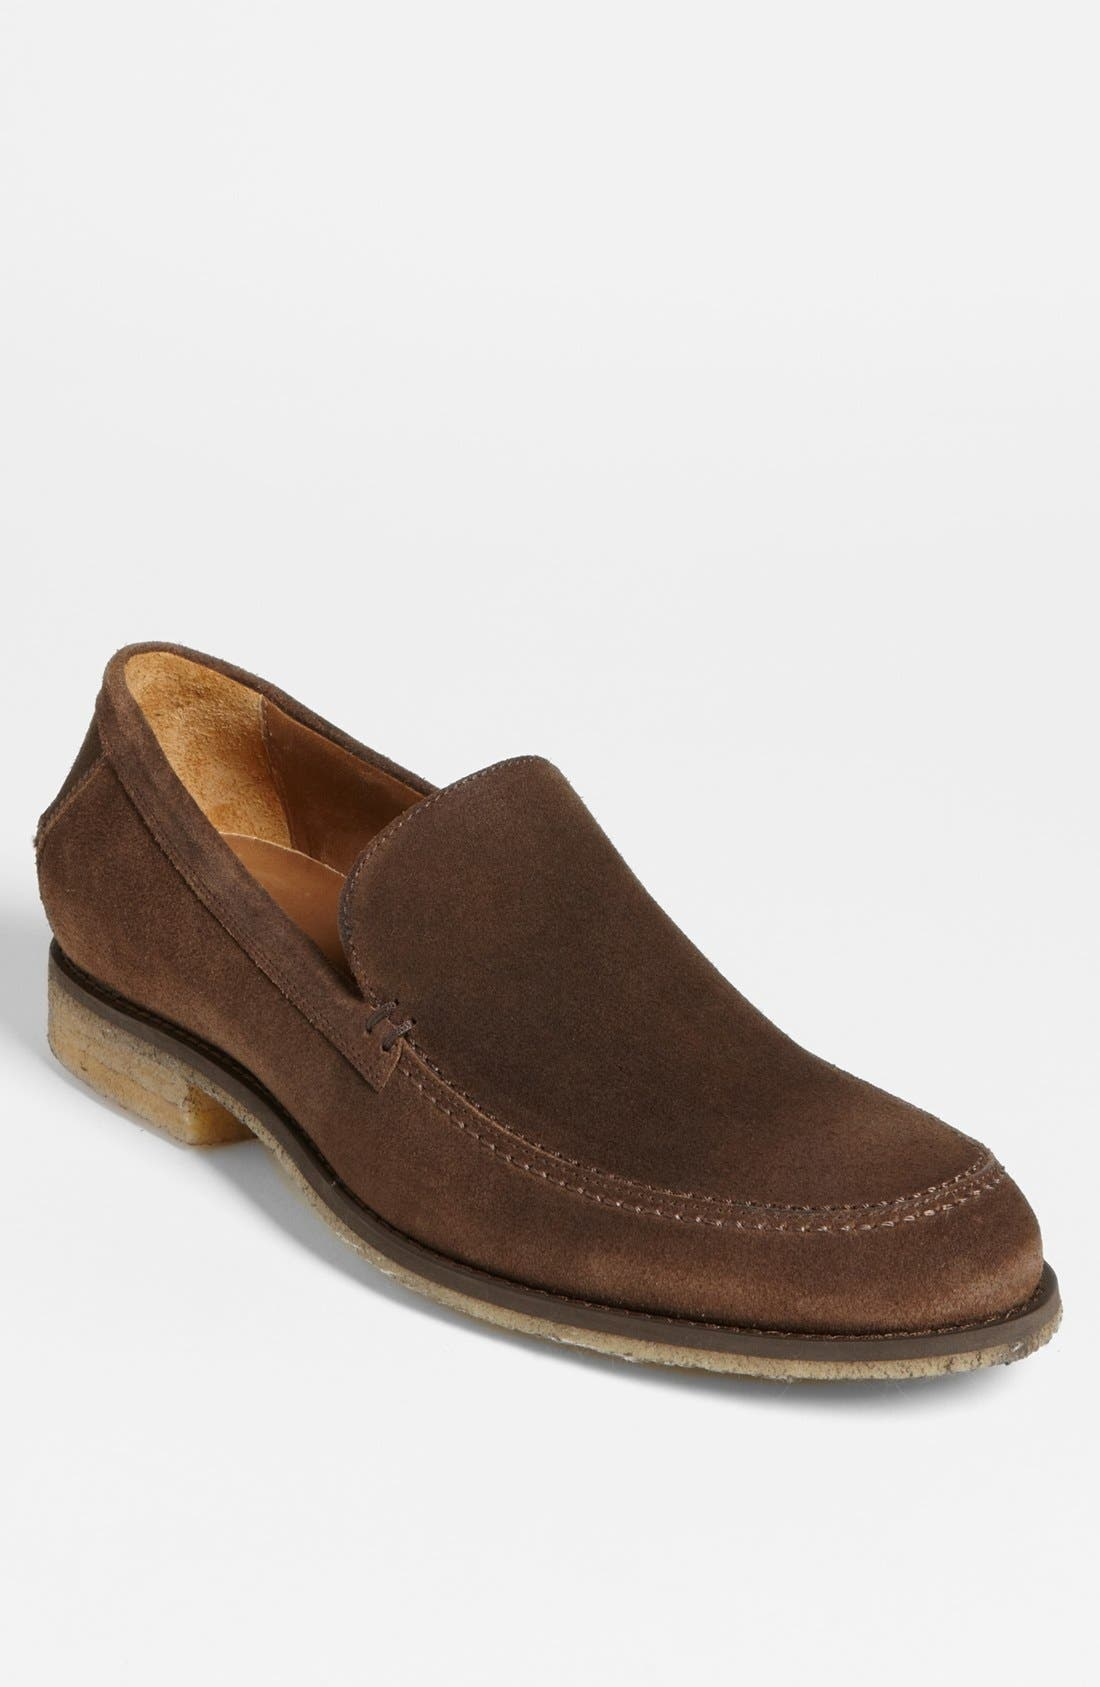 Main Image - John Varvatos Collection 'Monaco' Venetian Loafer